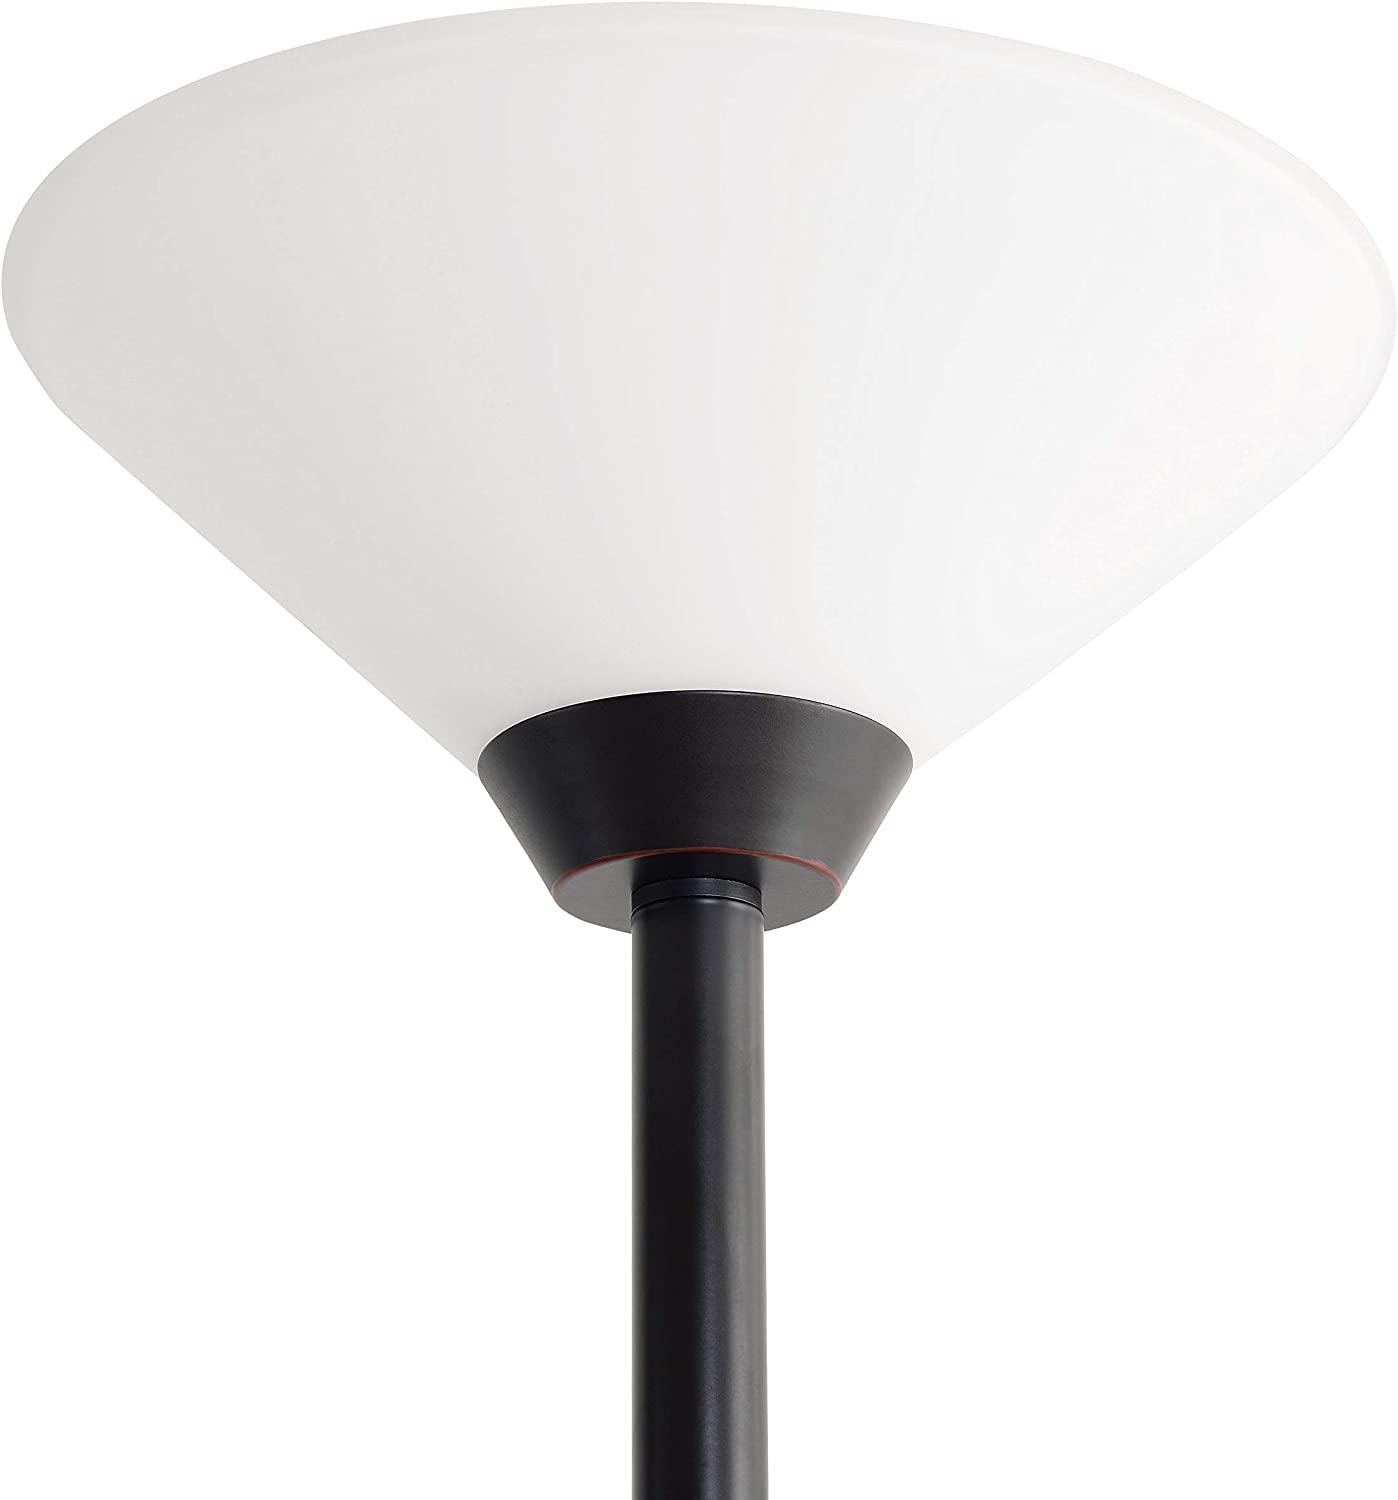 Kenroy Home Kenroy 21002BS Transitional Two Light Torchiere from Rush collection in Pwt, Nckl, B/S, Slvr. finish, 12.00 inches, Brushed Steel Oil-rubbed Bronze